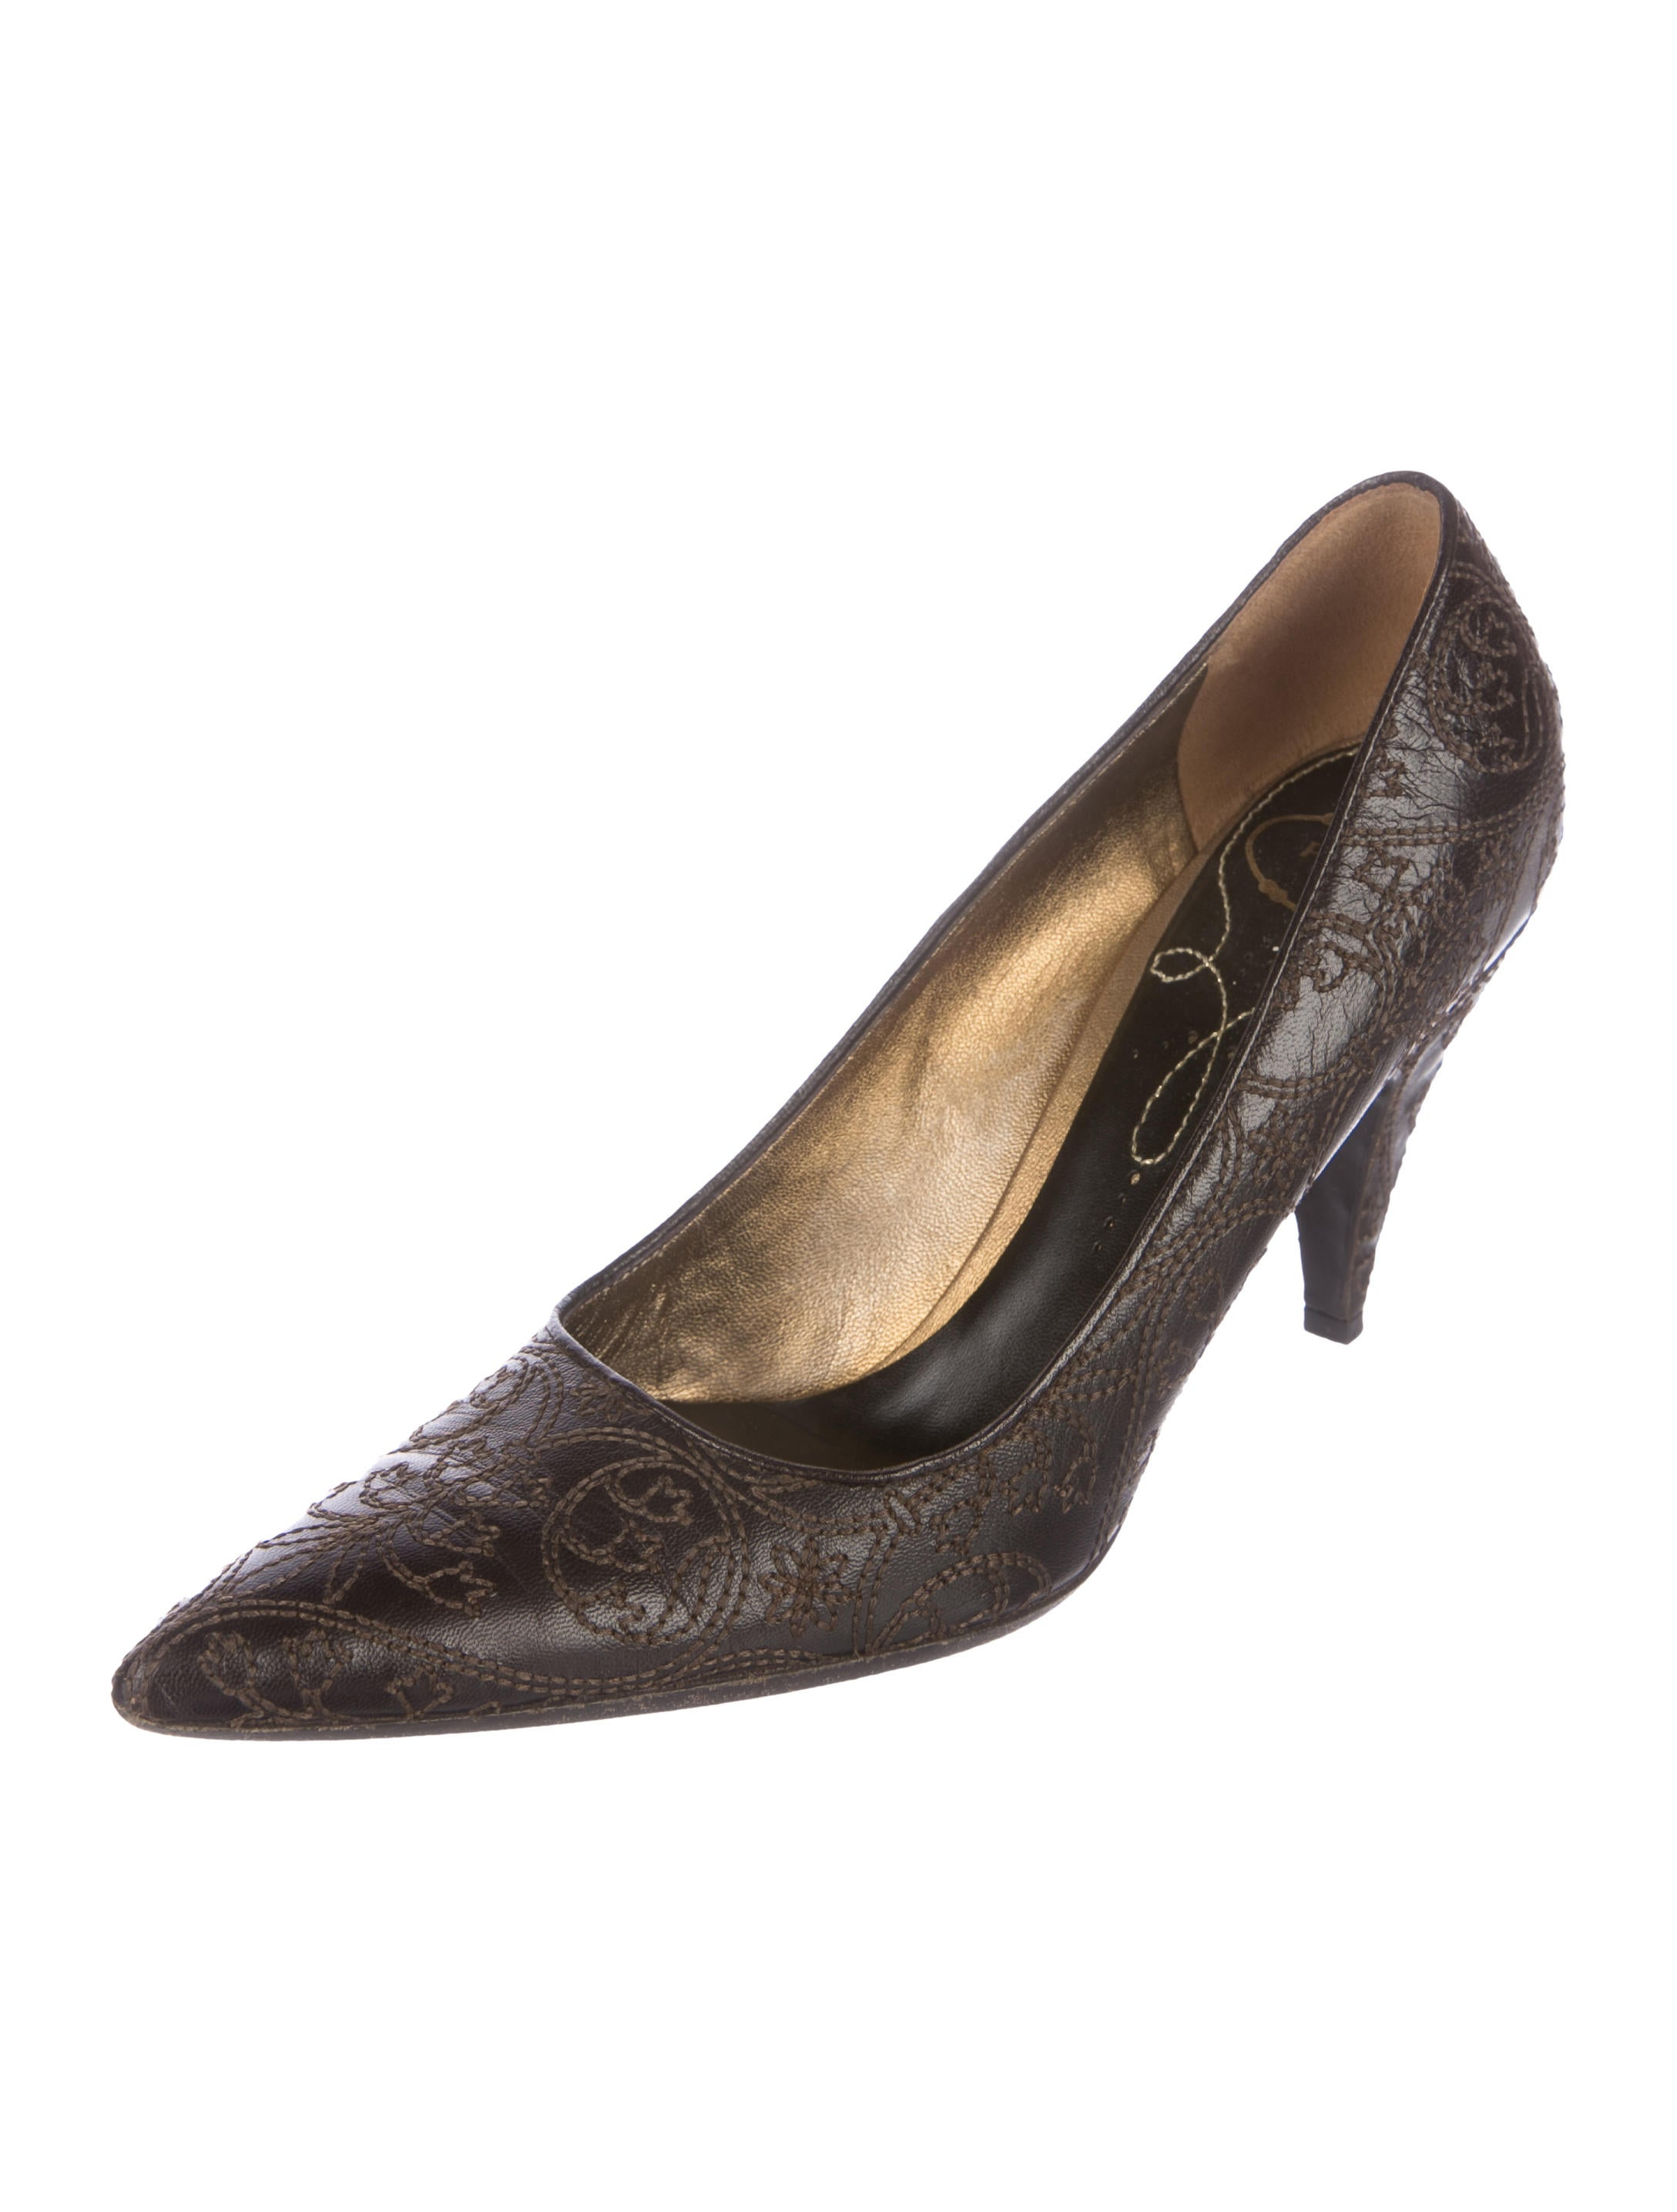 Cheap Sale Countdown Package Discount From China Prada Embroidered pointed pumps TWGyieseF7